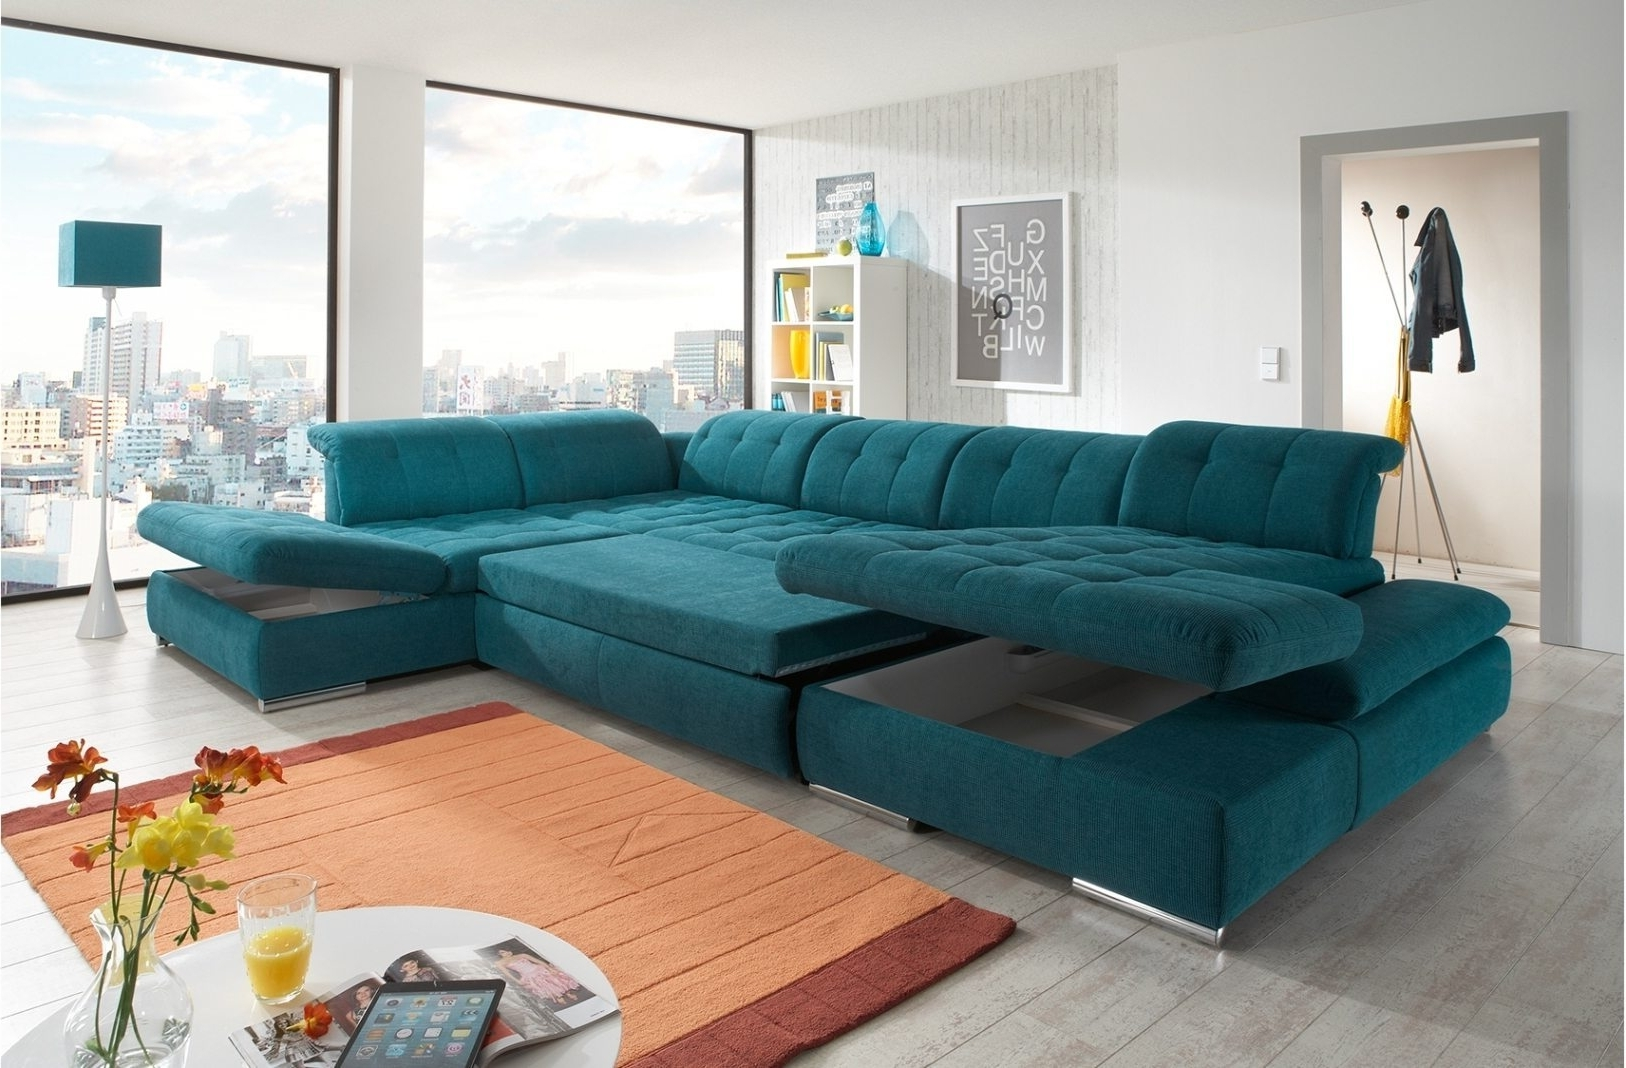 Appealing Deep Seated Sectional Sofa As Cover For With Chaise At Inside Most Popular Deep Seating Sectional Sofas (View 2 of 20)